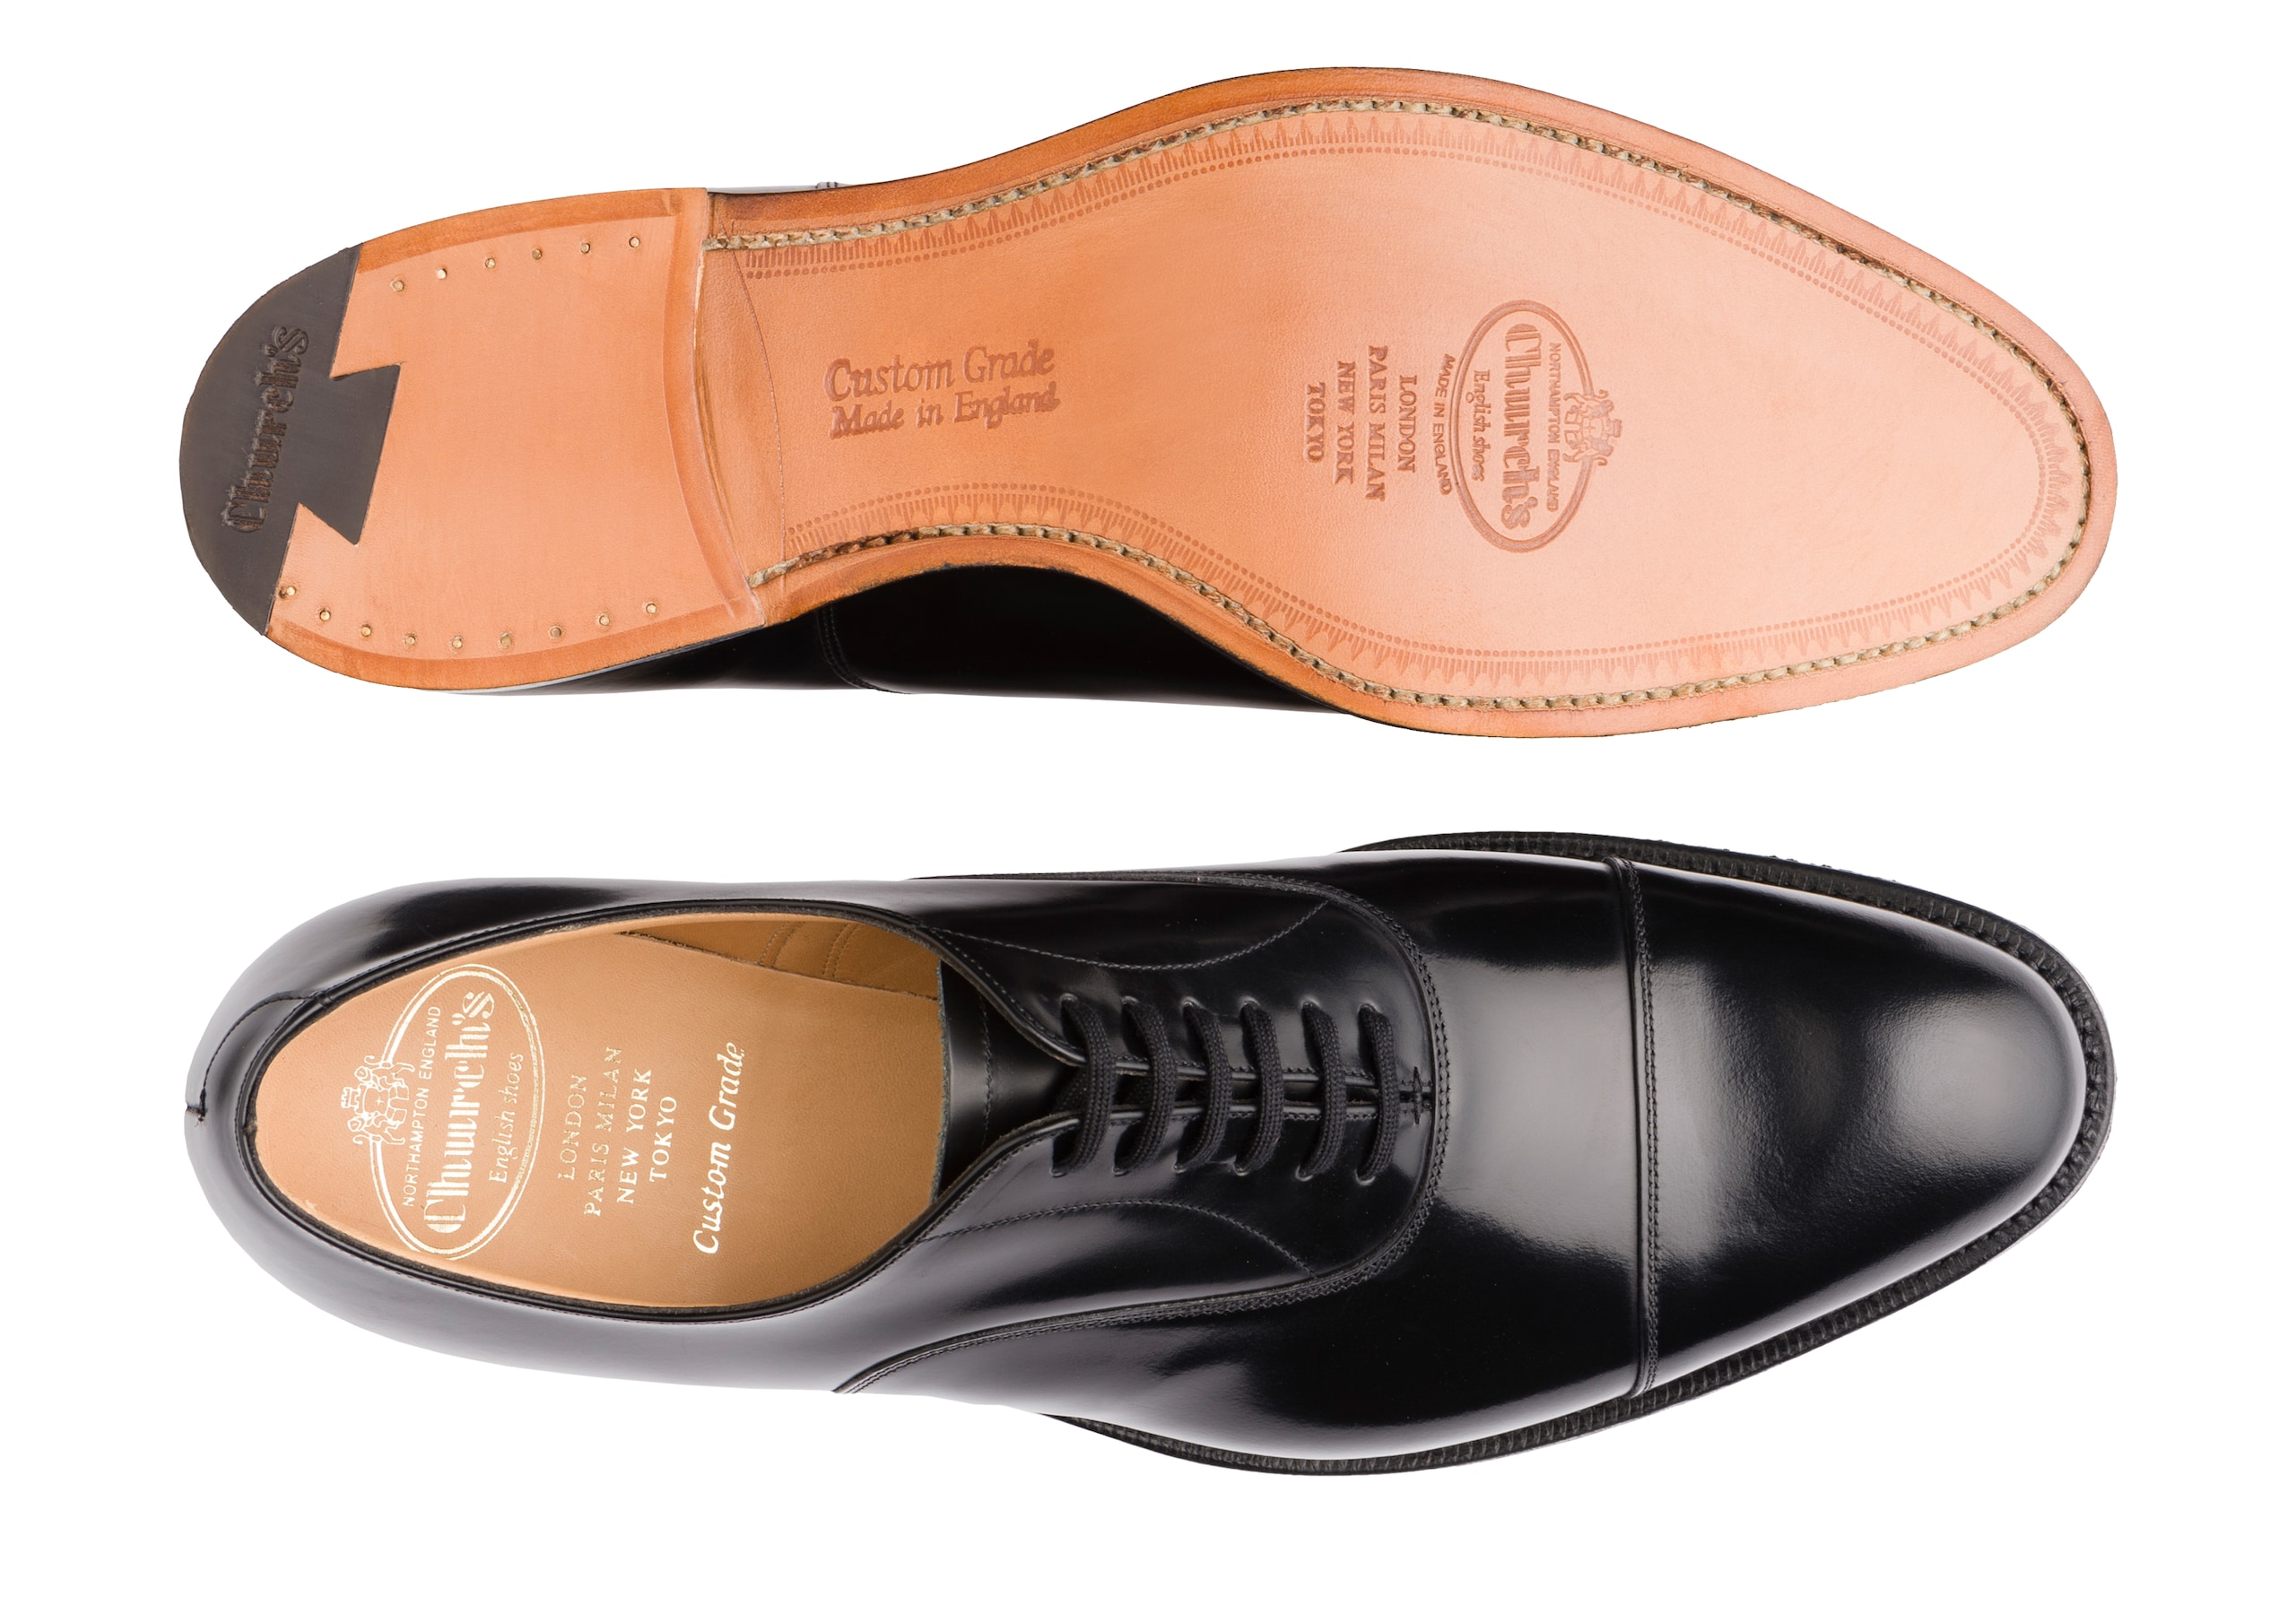 Dubai Church's Oxford in Pelle di Vitello Spazzolato Nero